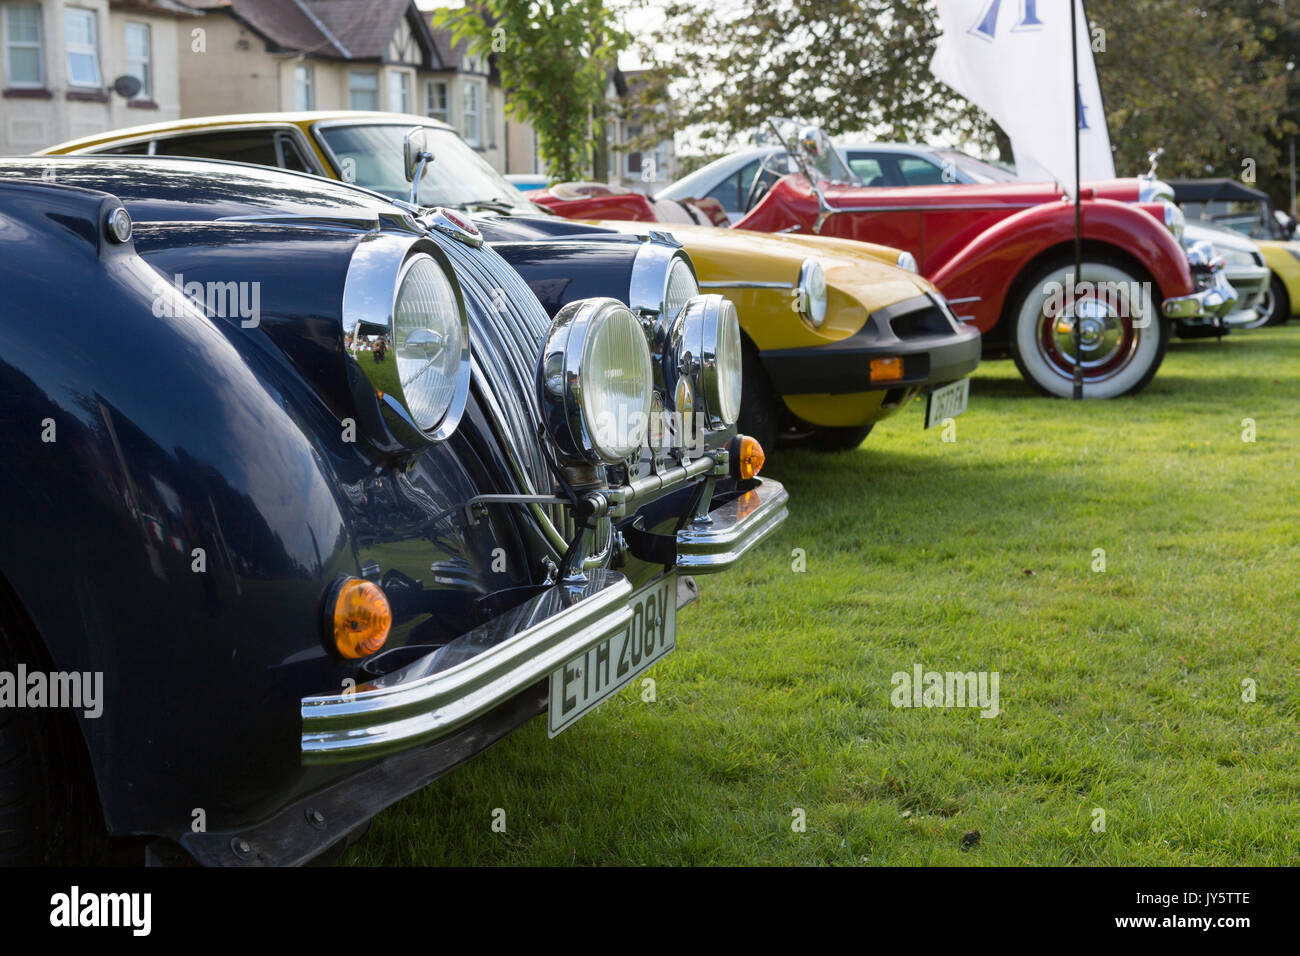 Vintage And Classic Cars Stock Photos & Vintage And Classic Cars ...